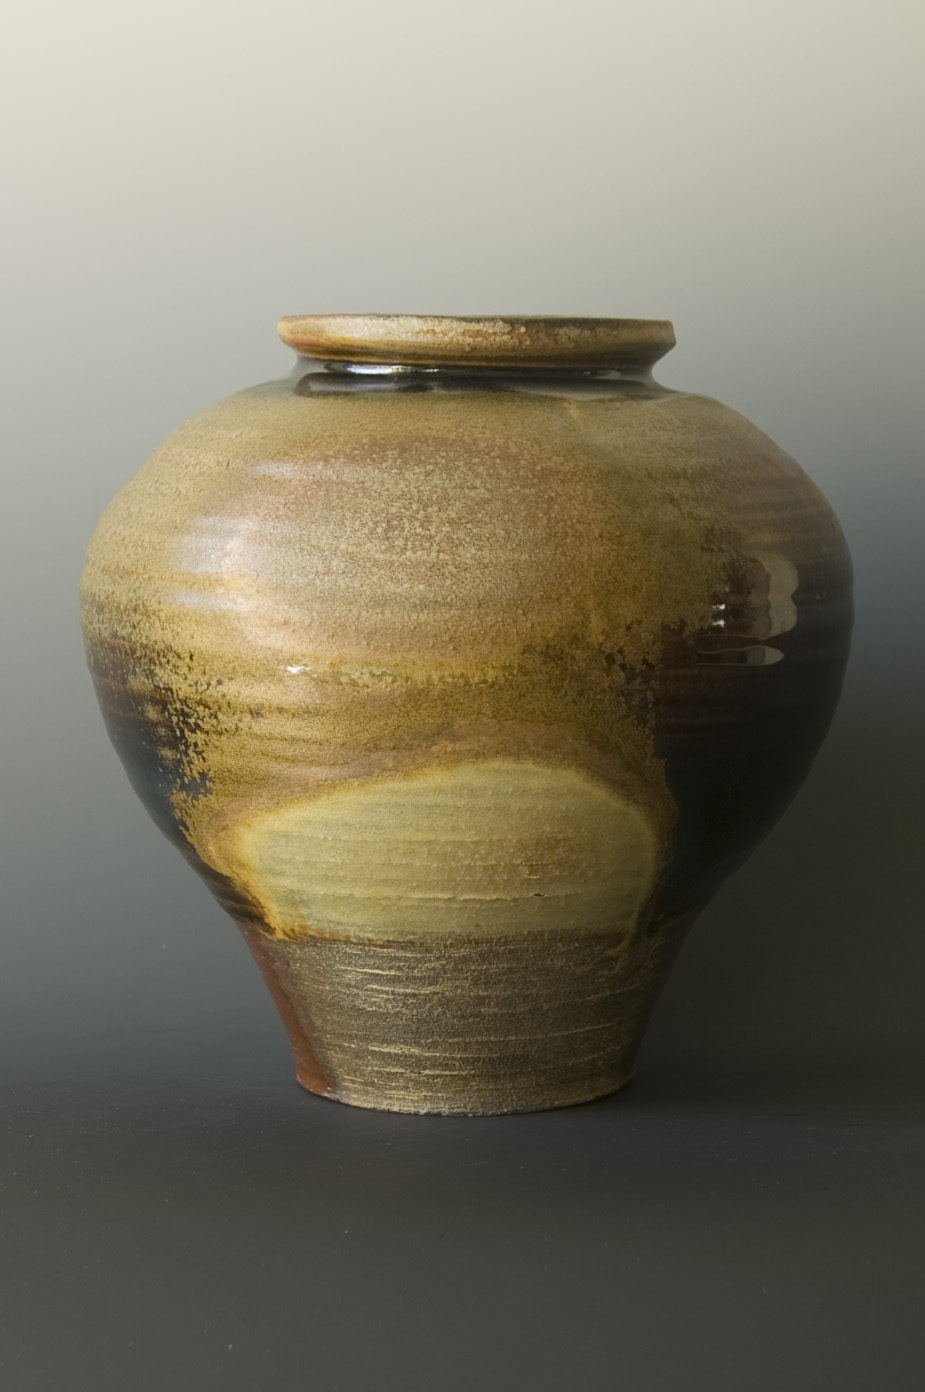 Stoneware, 5-day anagama wood fired, glaze